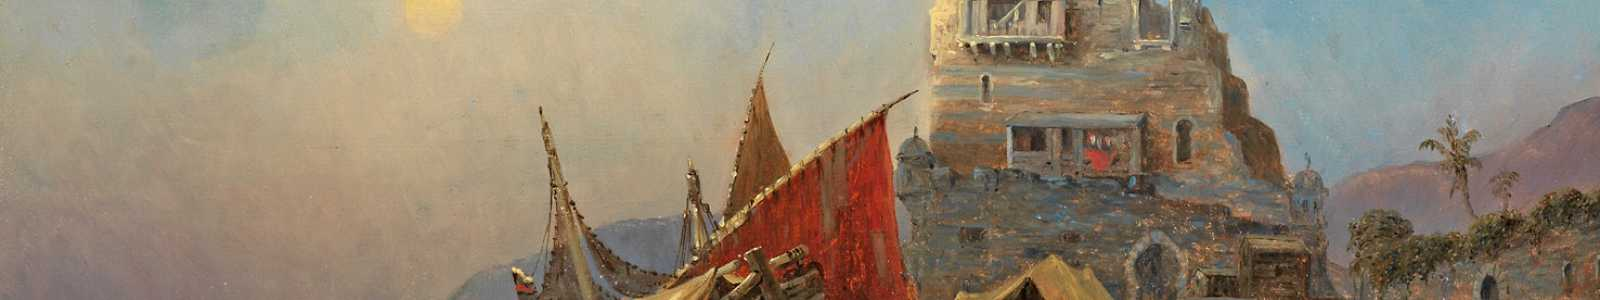 Great art auction Nr169 part II: International art and antiques